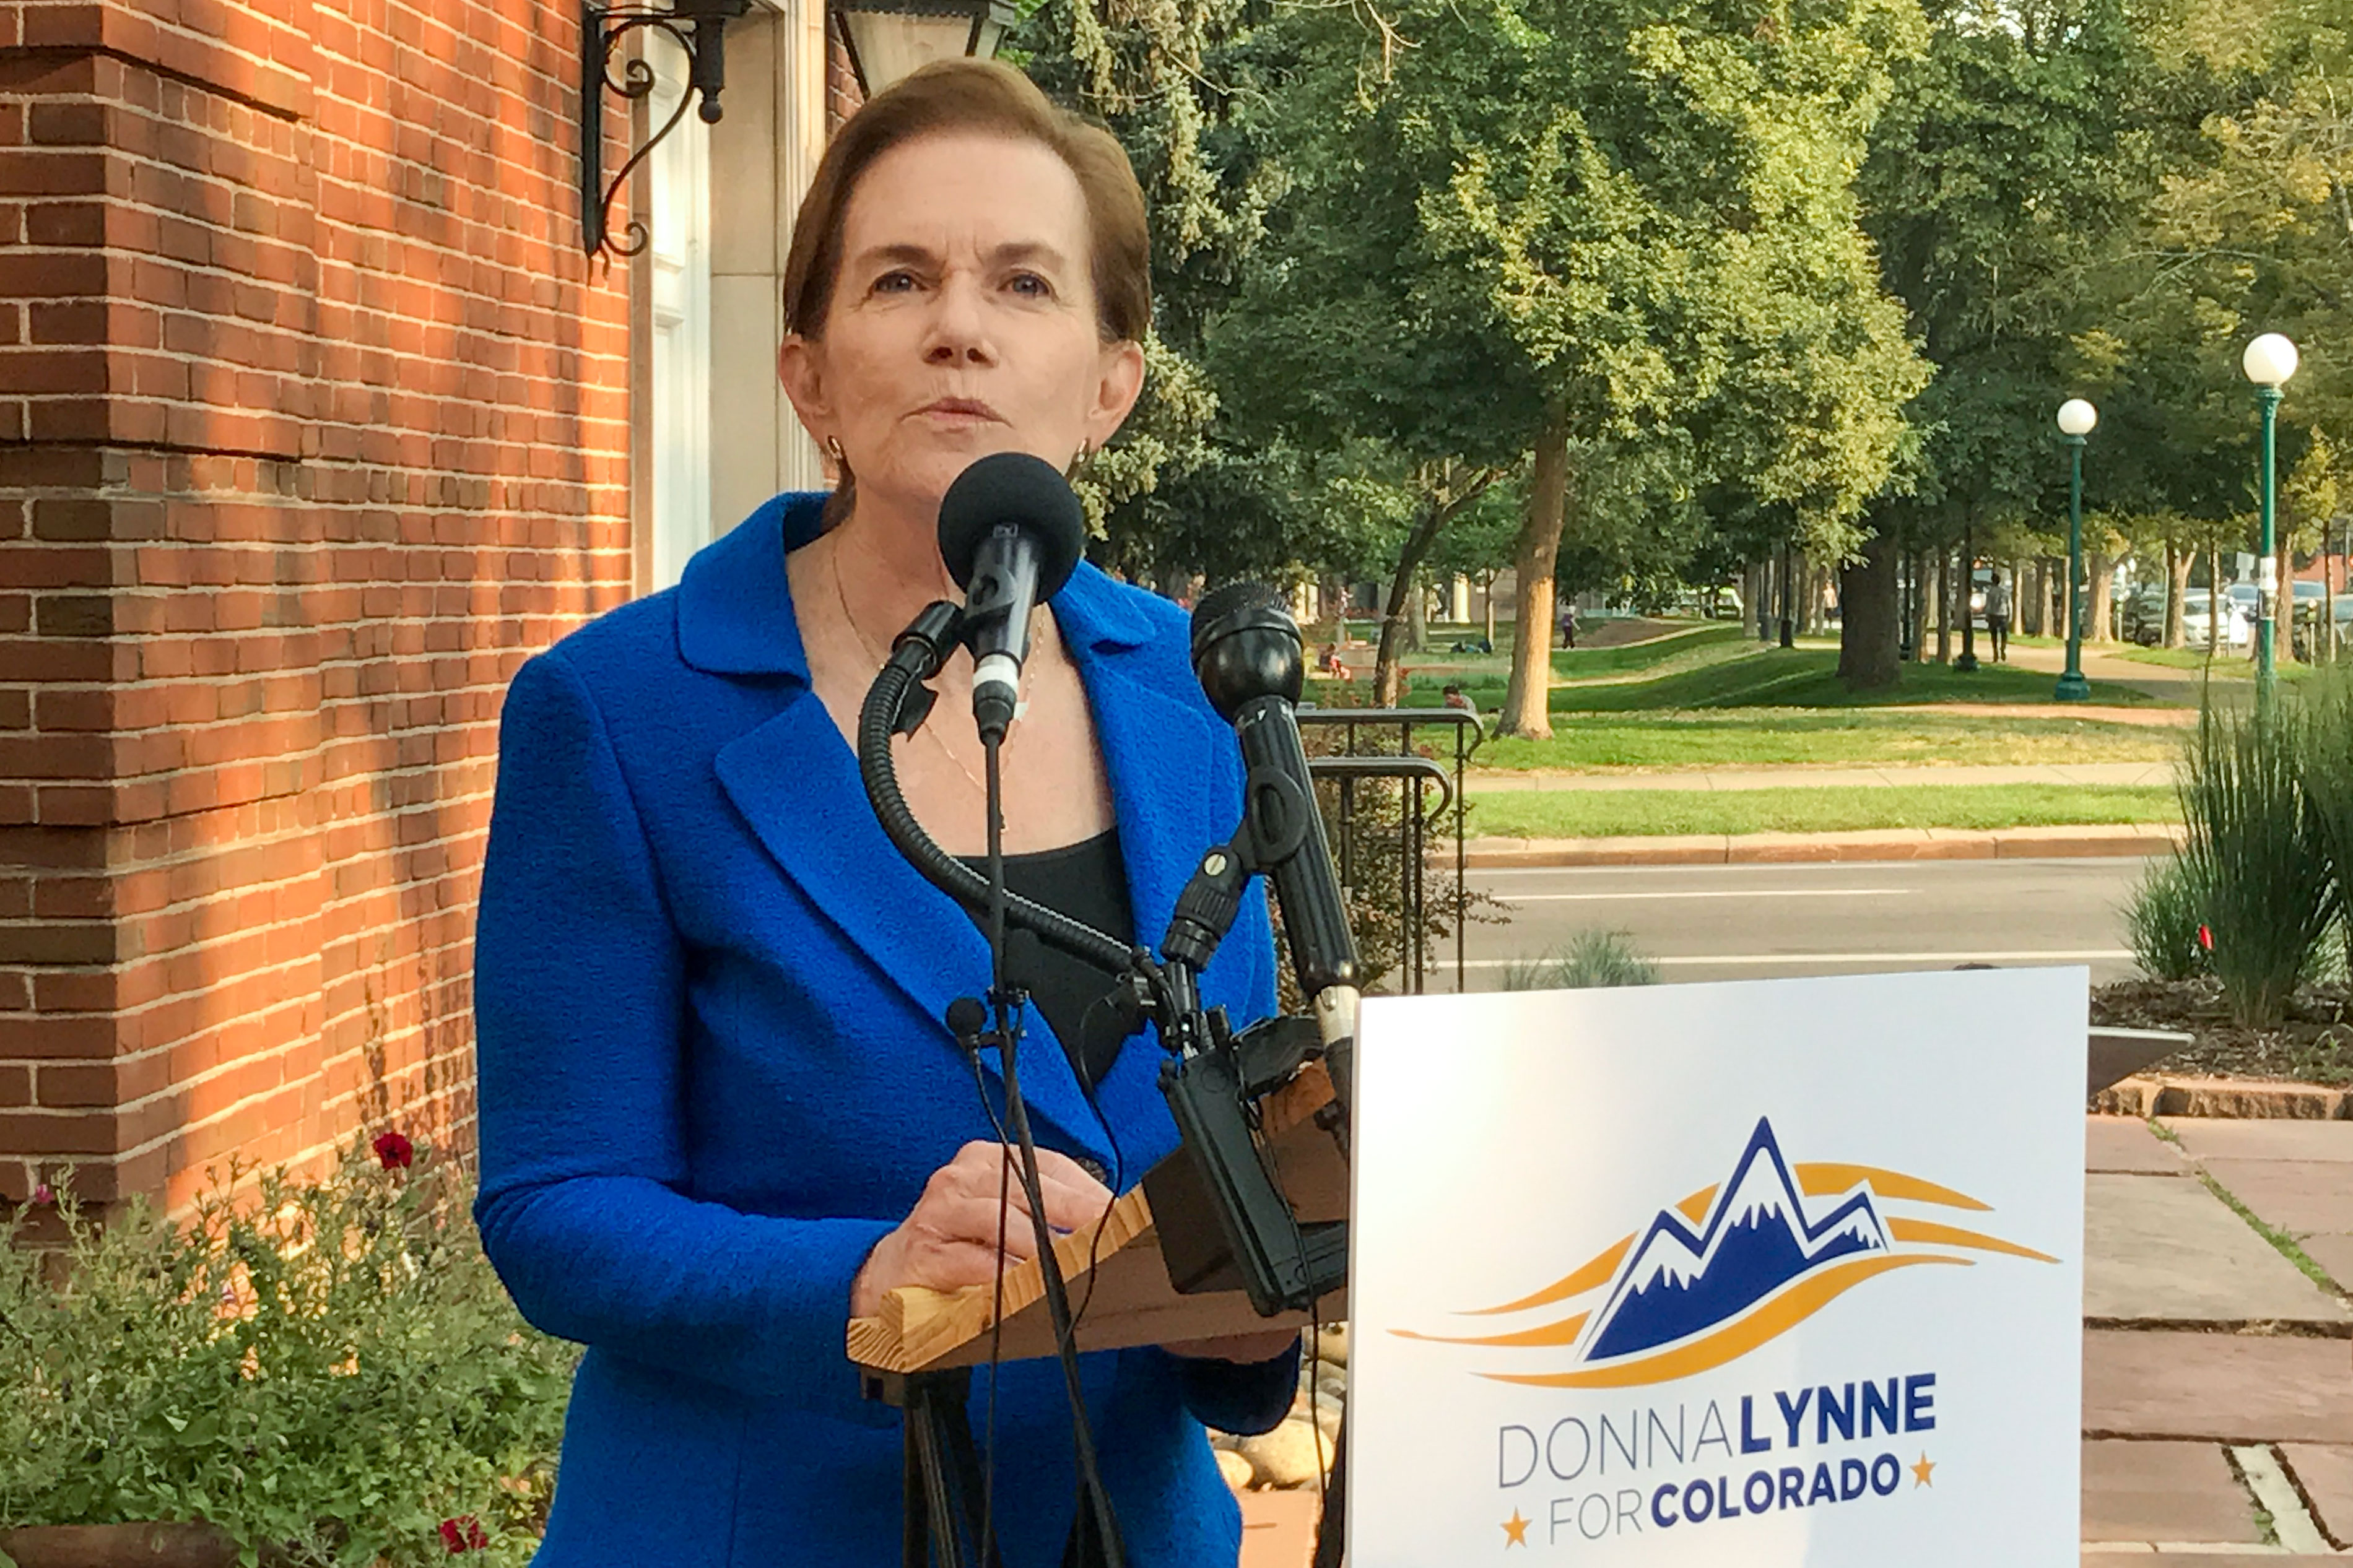 <p>Colorado Lt. Gov. Donna Lynne announces that she's in for the 2018 Governor's Race. She still has to face a crowded Democratic primary field for the chance to succeedthe current governor, John Hickenlooper.</p>